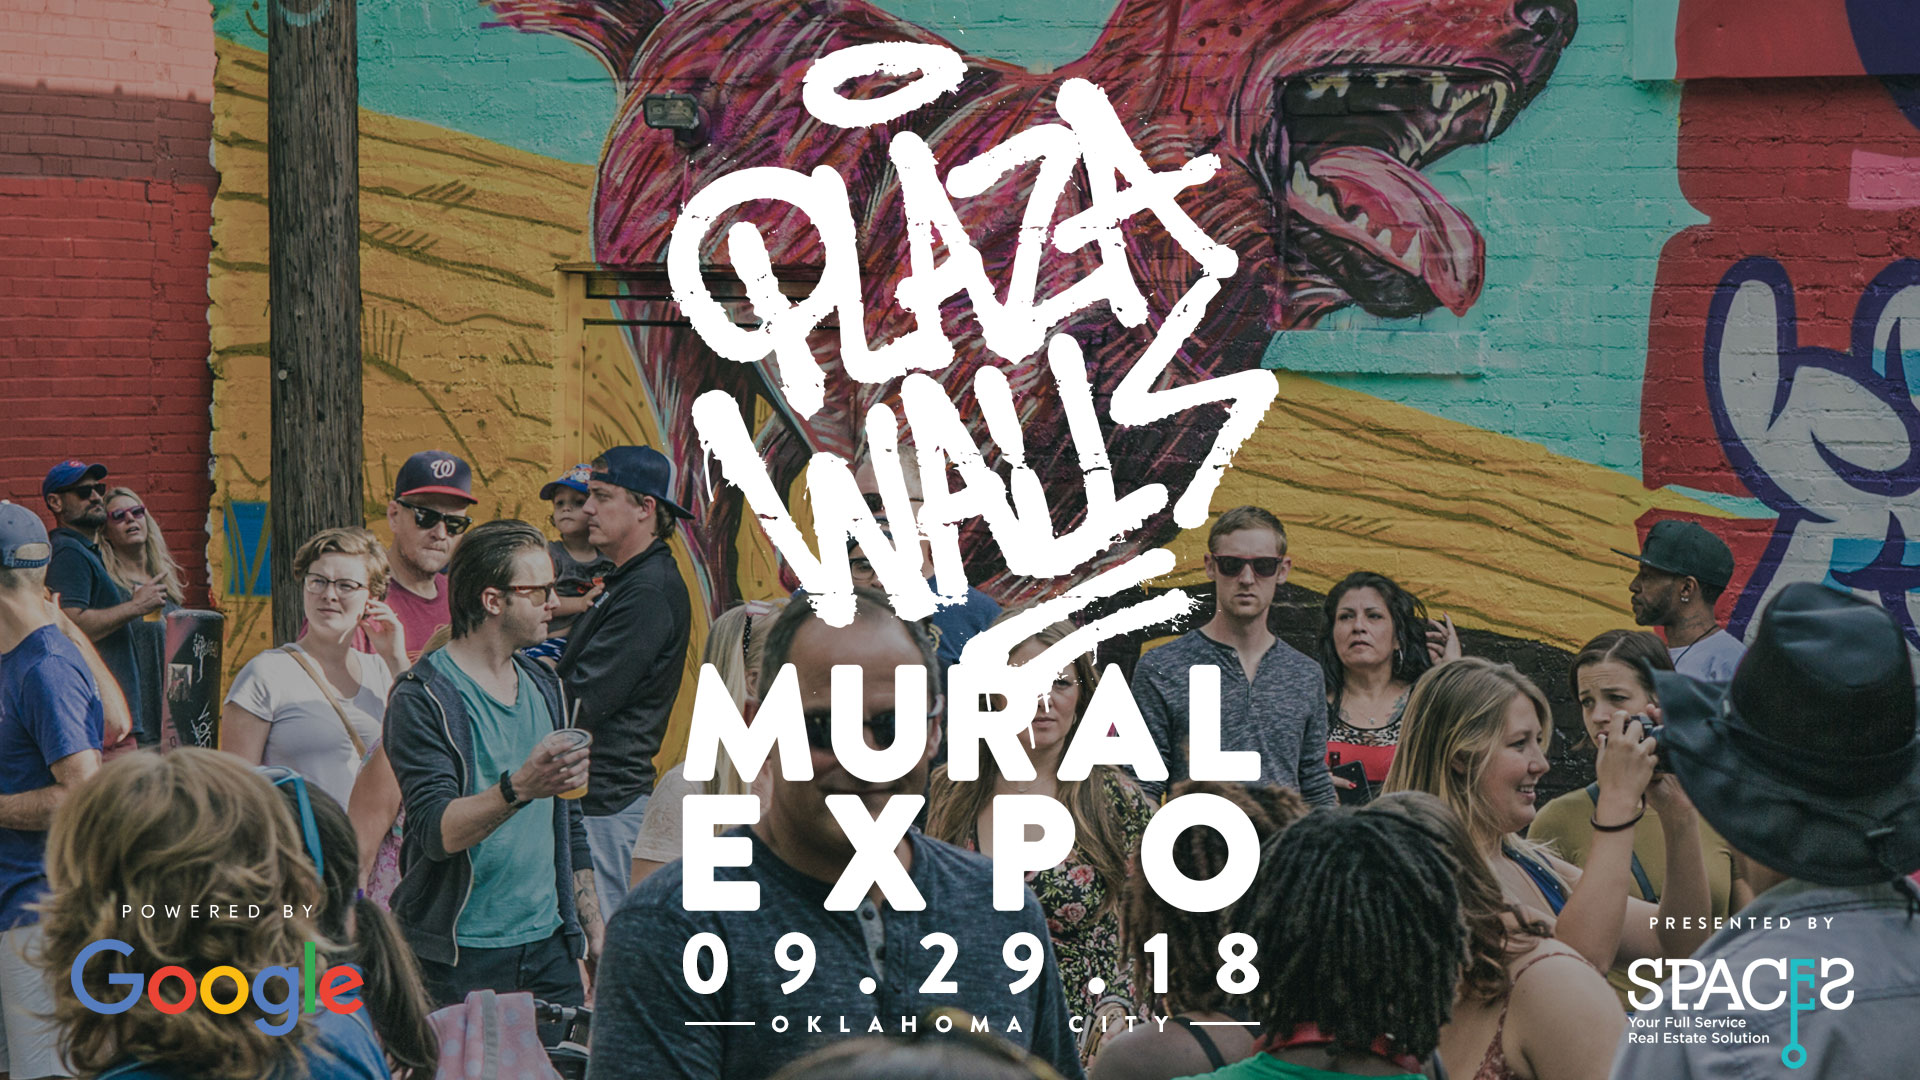 mural-expo-2018-website-hero.jpg